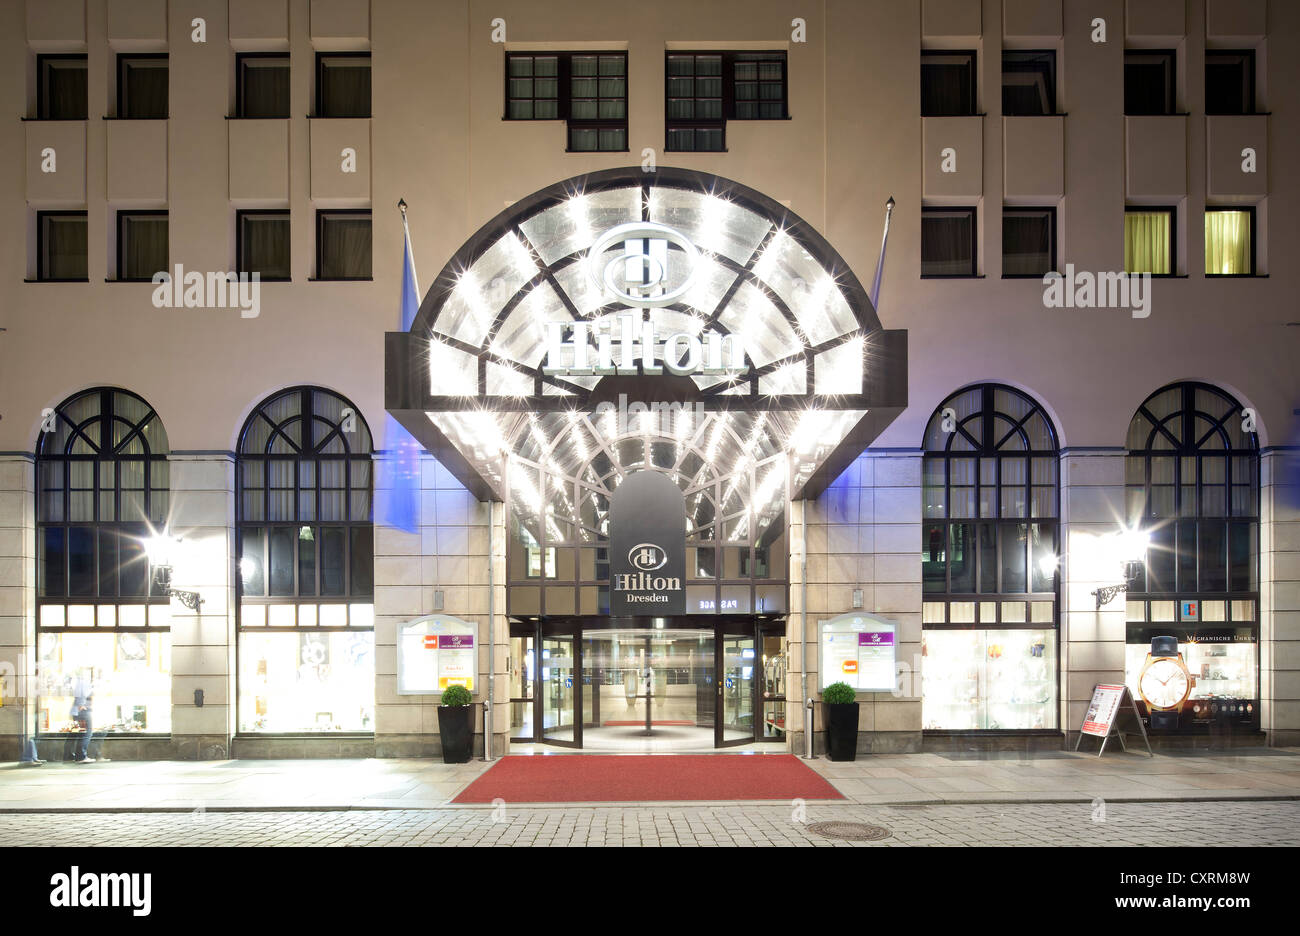 Hilton Hotel, historic town centre, Dresden, Saxony, Germany, Europe, PublicGround - Stock Image